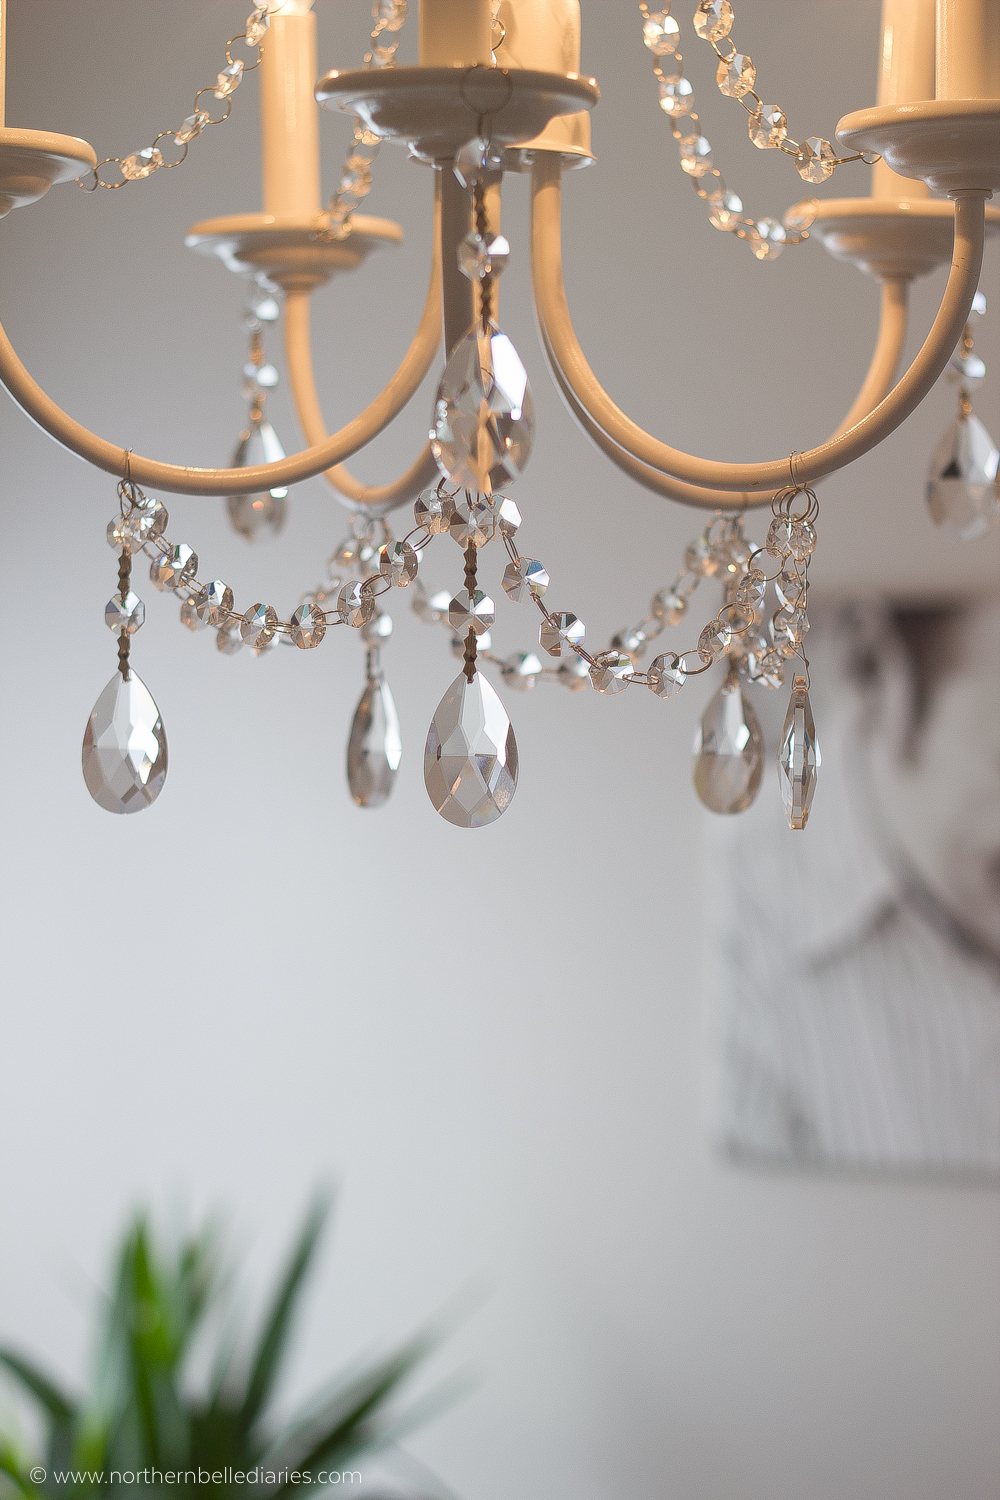 You can make your own DIY crystal chandelier. This site shows you how! #easydiy #diy #decor #chandelier